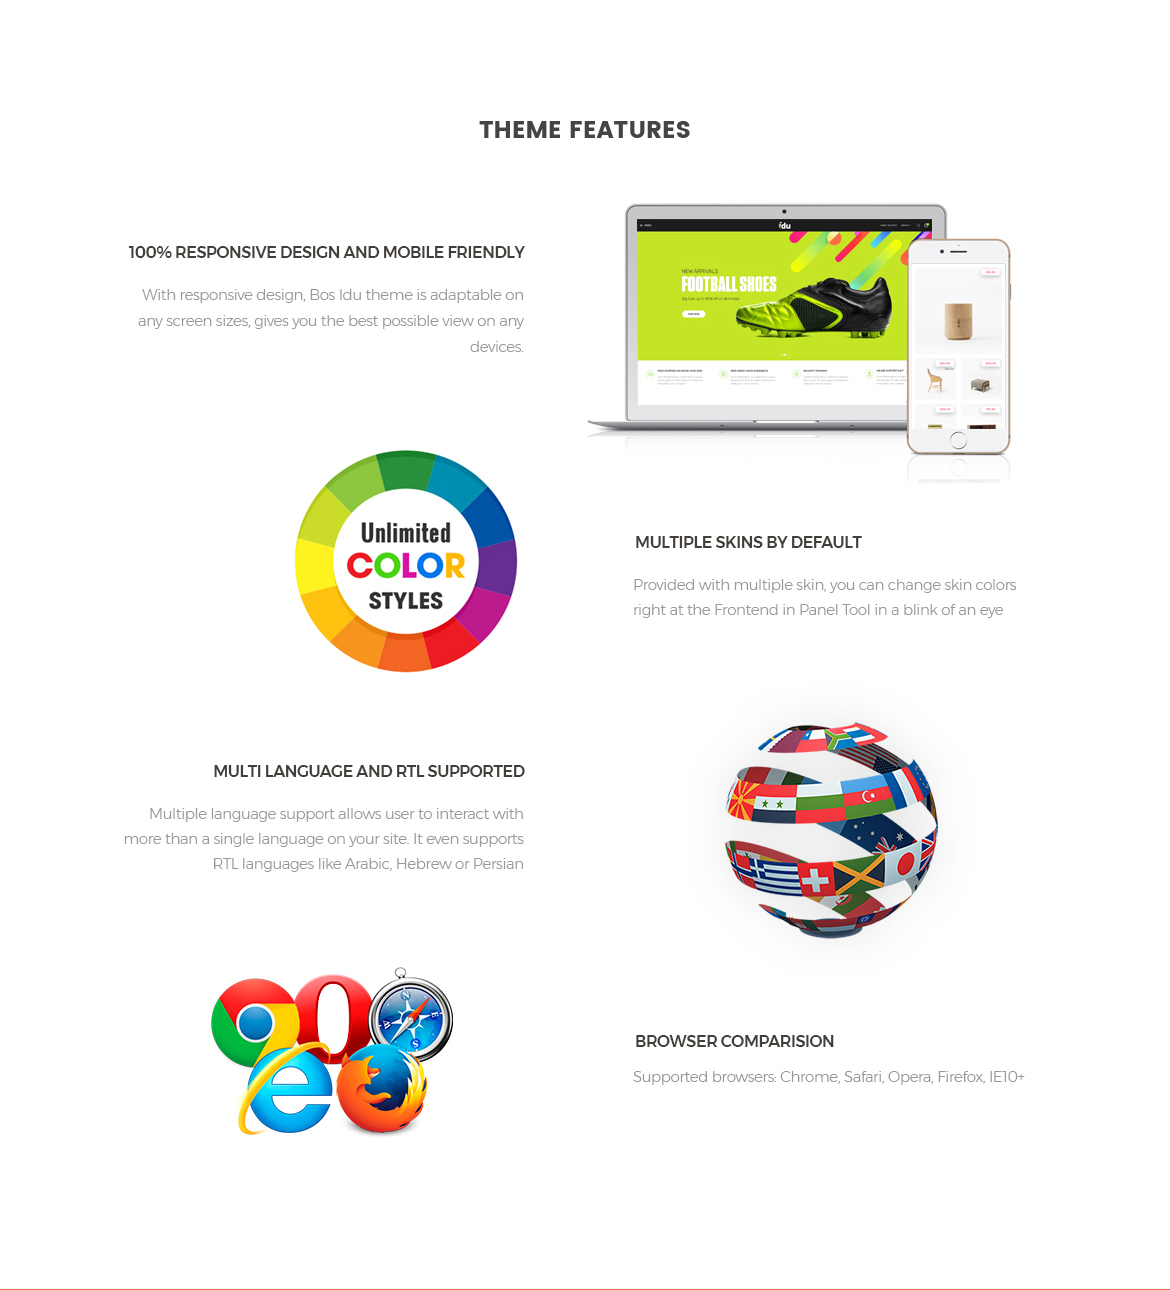 theme features-Bos Idu Prestashop theme-Shoes, Handwatch, Fashion Store